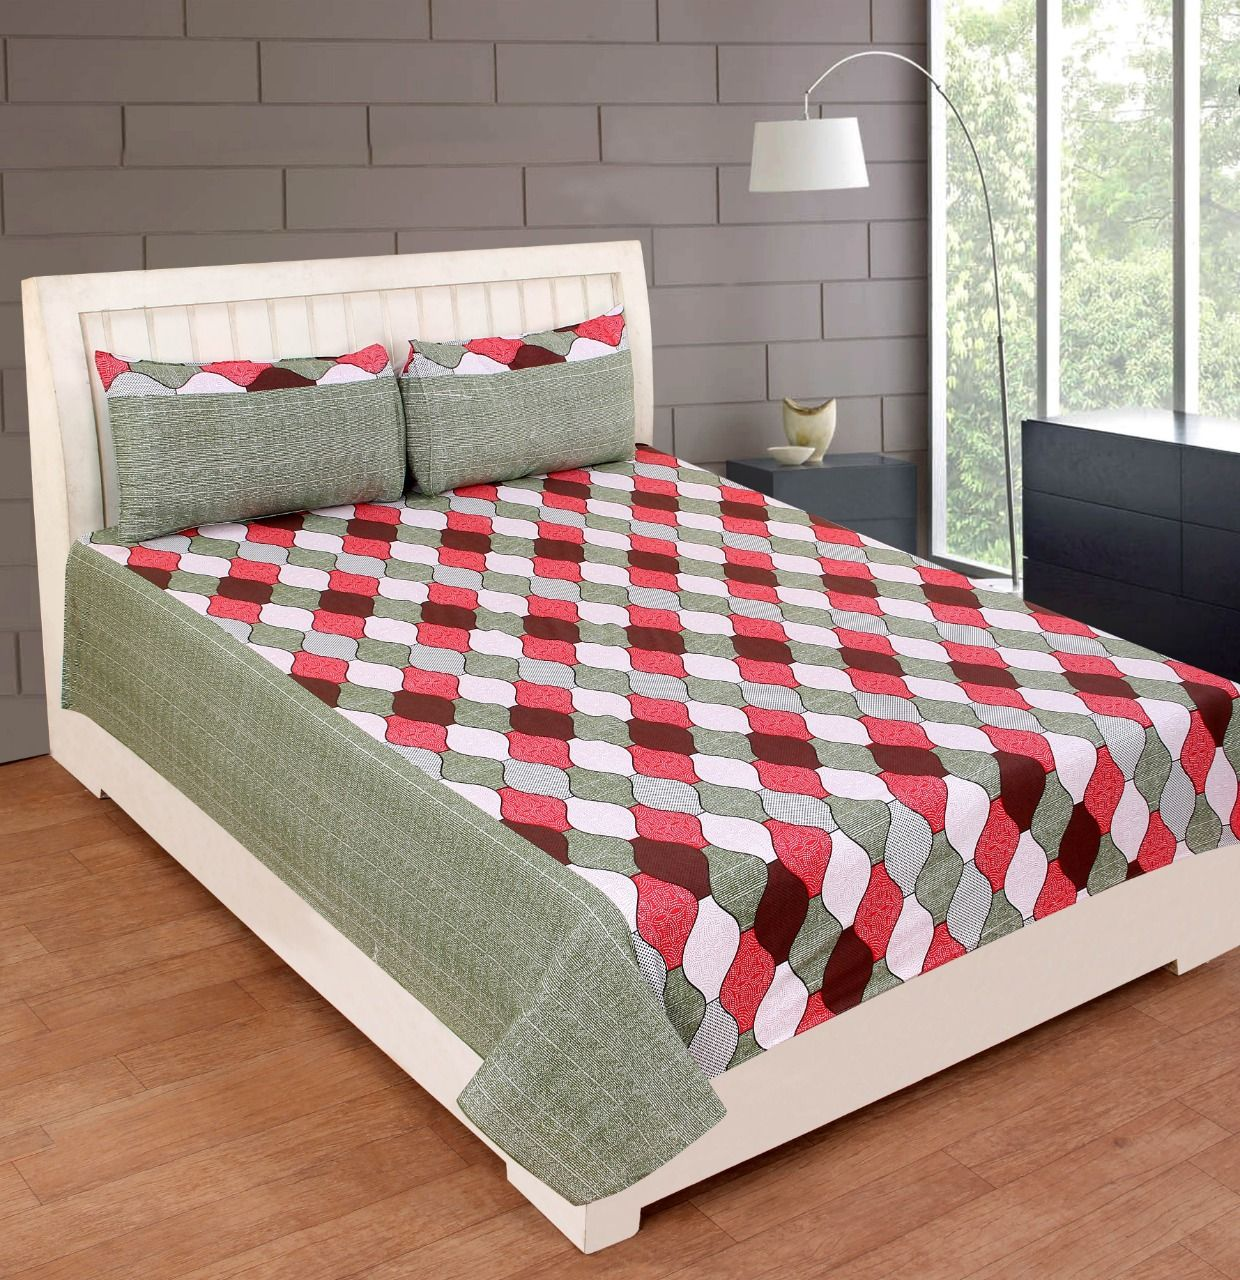 Home textile manufacturers in India in 2020 Linen bed